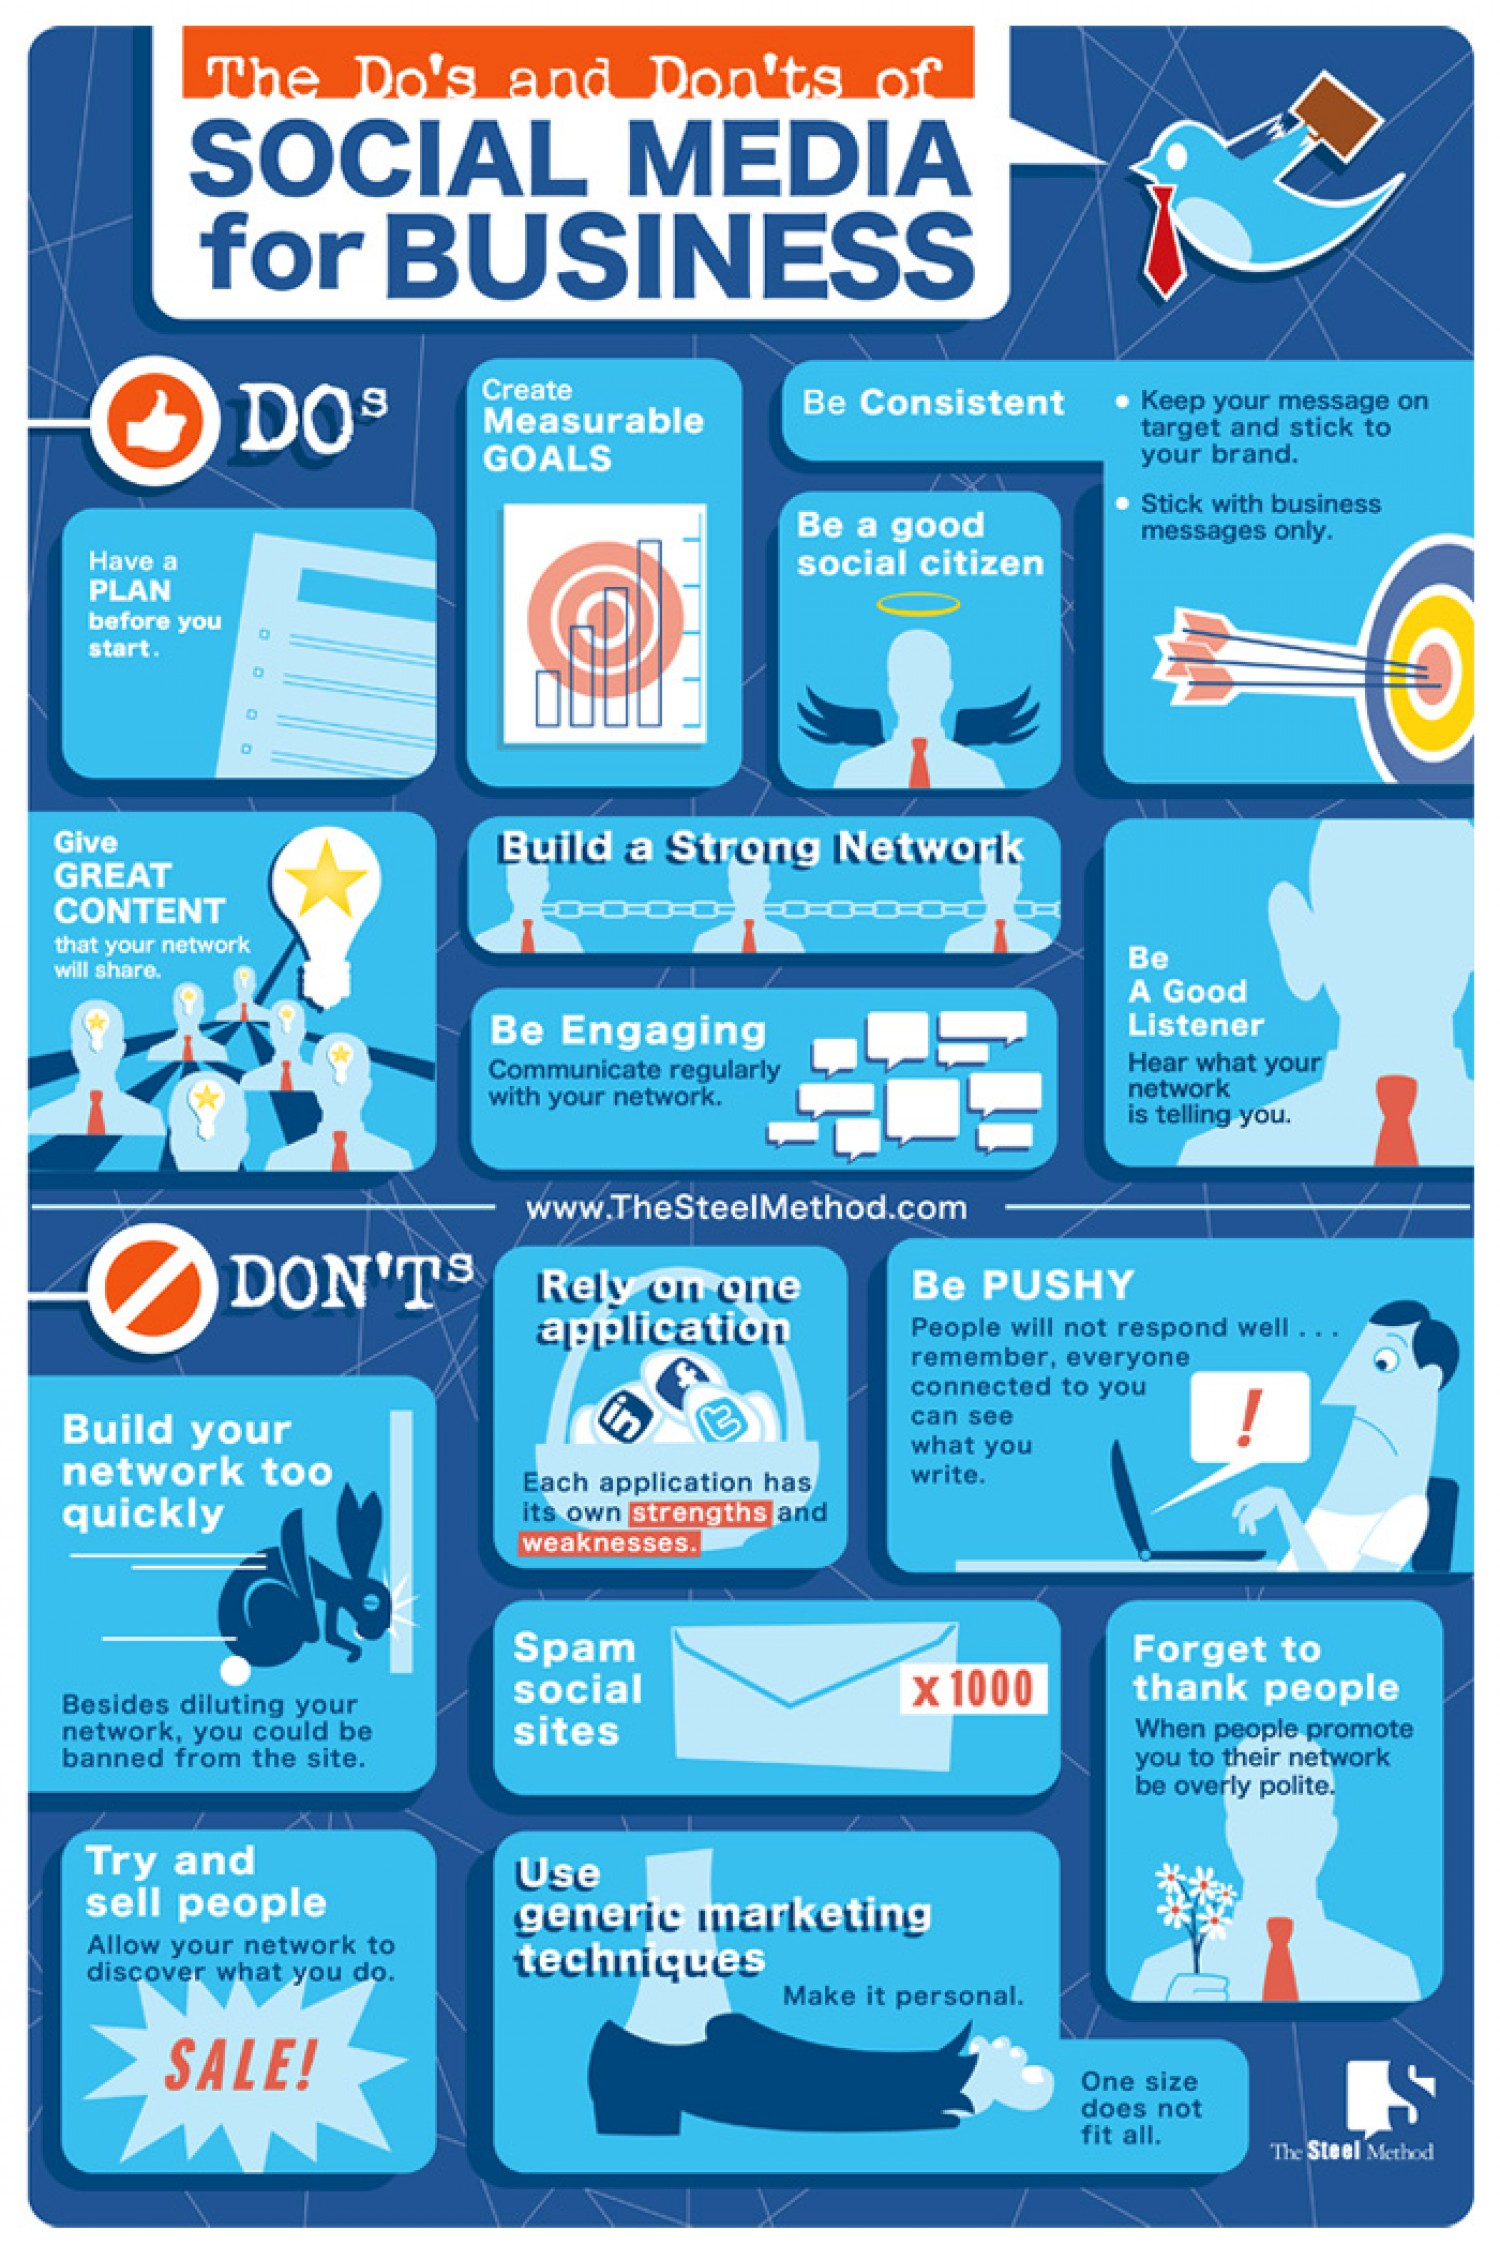 Social Media Etiquette Some Dos And Donts Infographic-1107